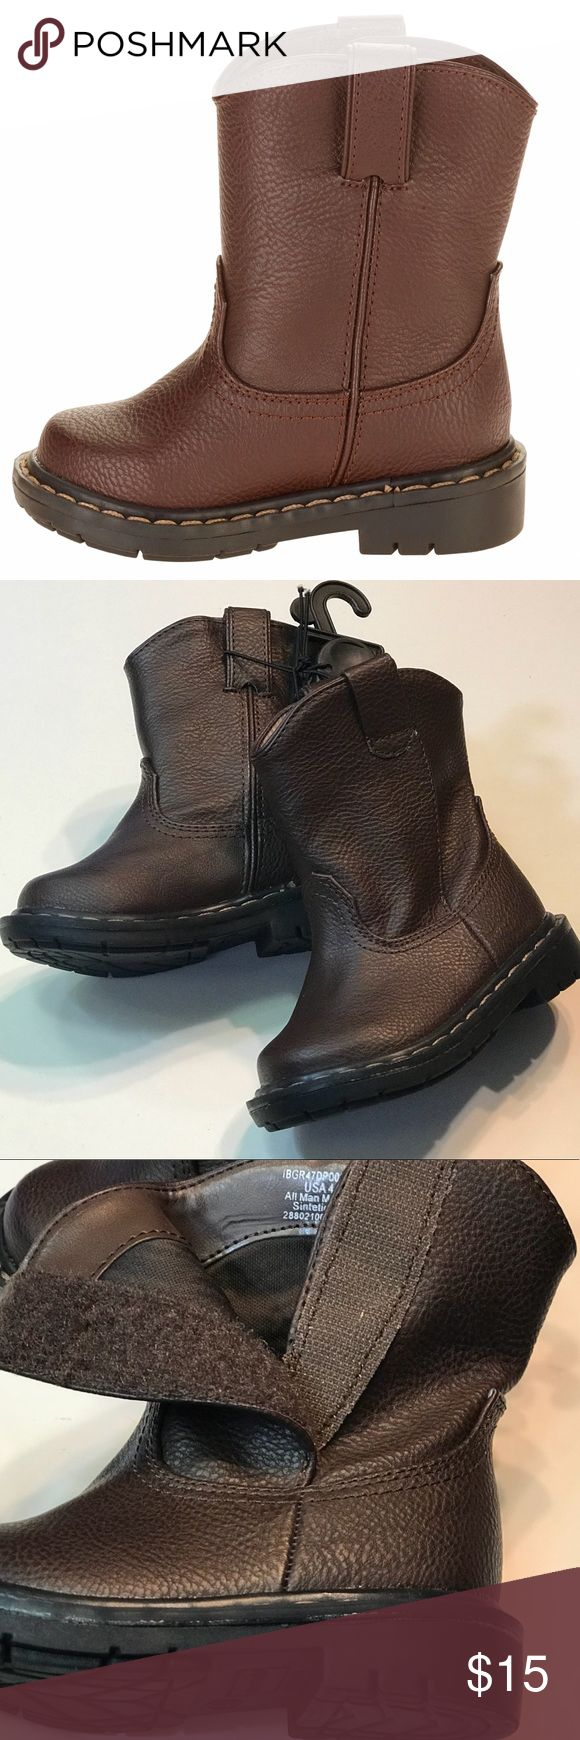 Dark Brown Pull-on Children Boots Pre-walk Boots Cute brown boots baby and big kids! Brand new! No box Faded Glory Shoes Boots